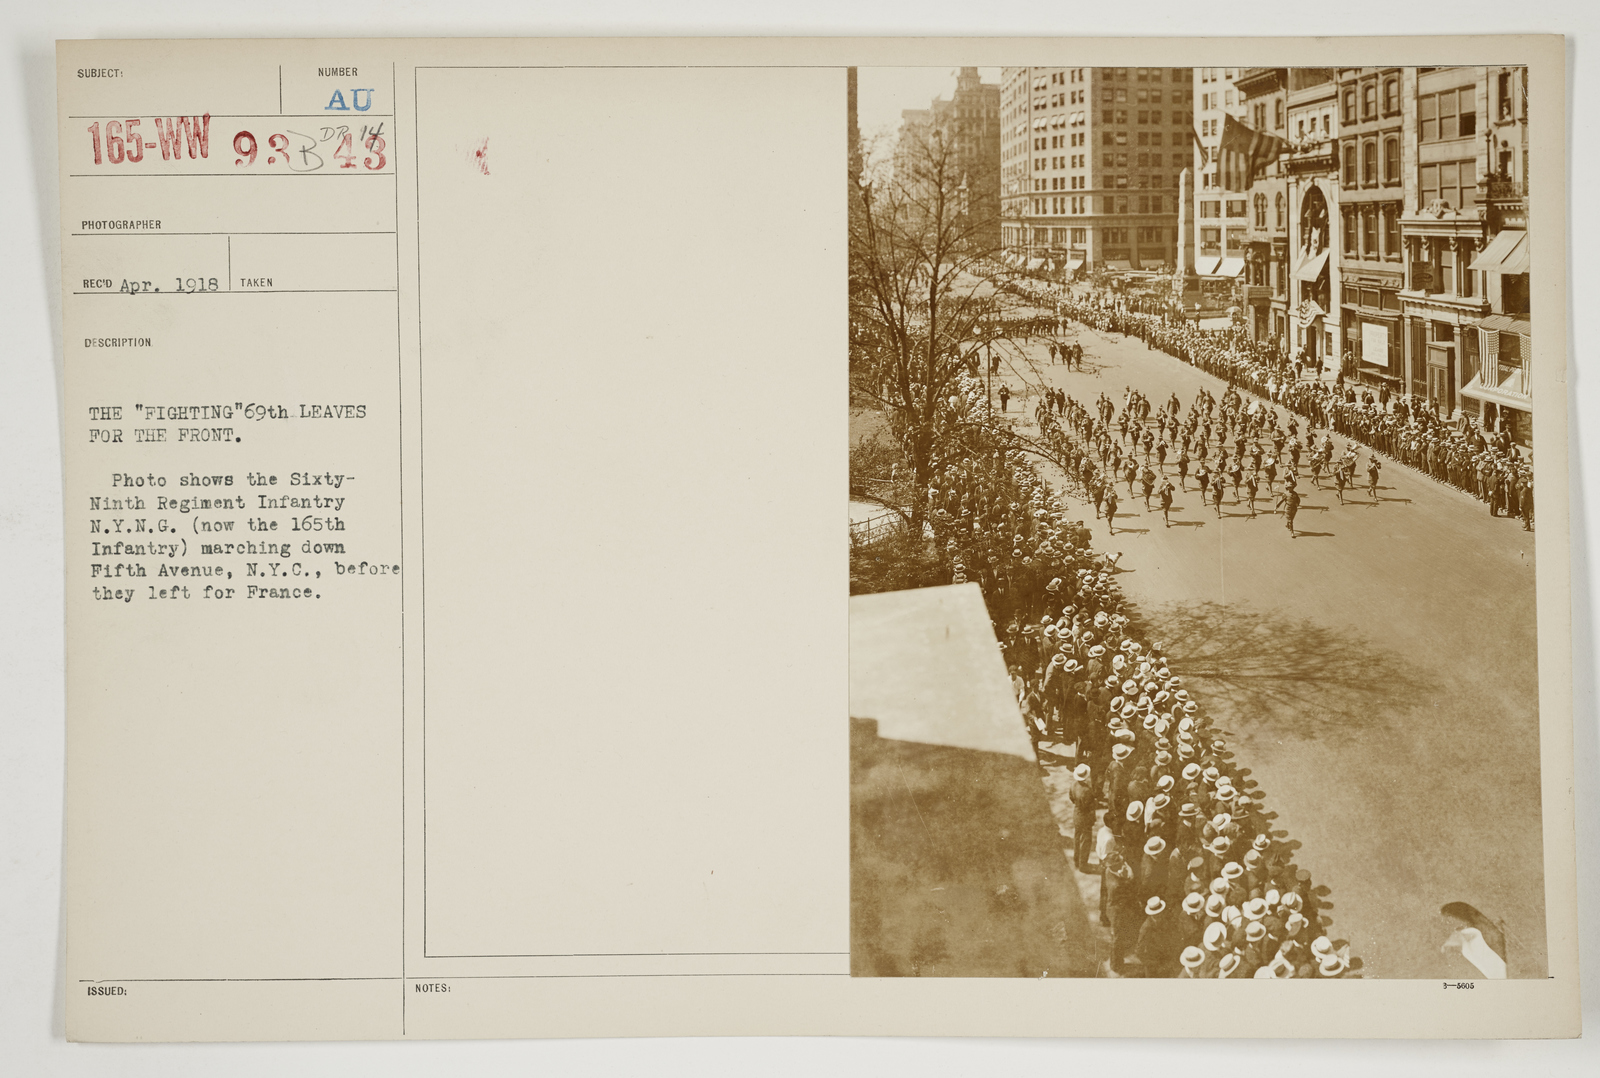 "Ceremonies - Salutes and Parades - New York - The ""Fighting 69th"" leaves for the front.  Photo shows the Sixty-Ninth Regiment Infantry New York National Guard. (now the 165th Infantry) marching down Fifth Avenue, New York City., before they left for France"